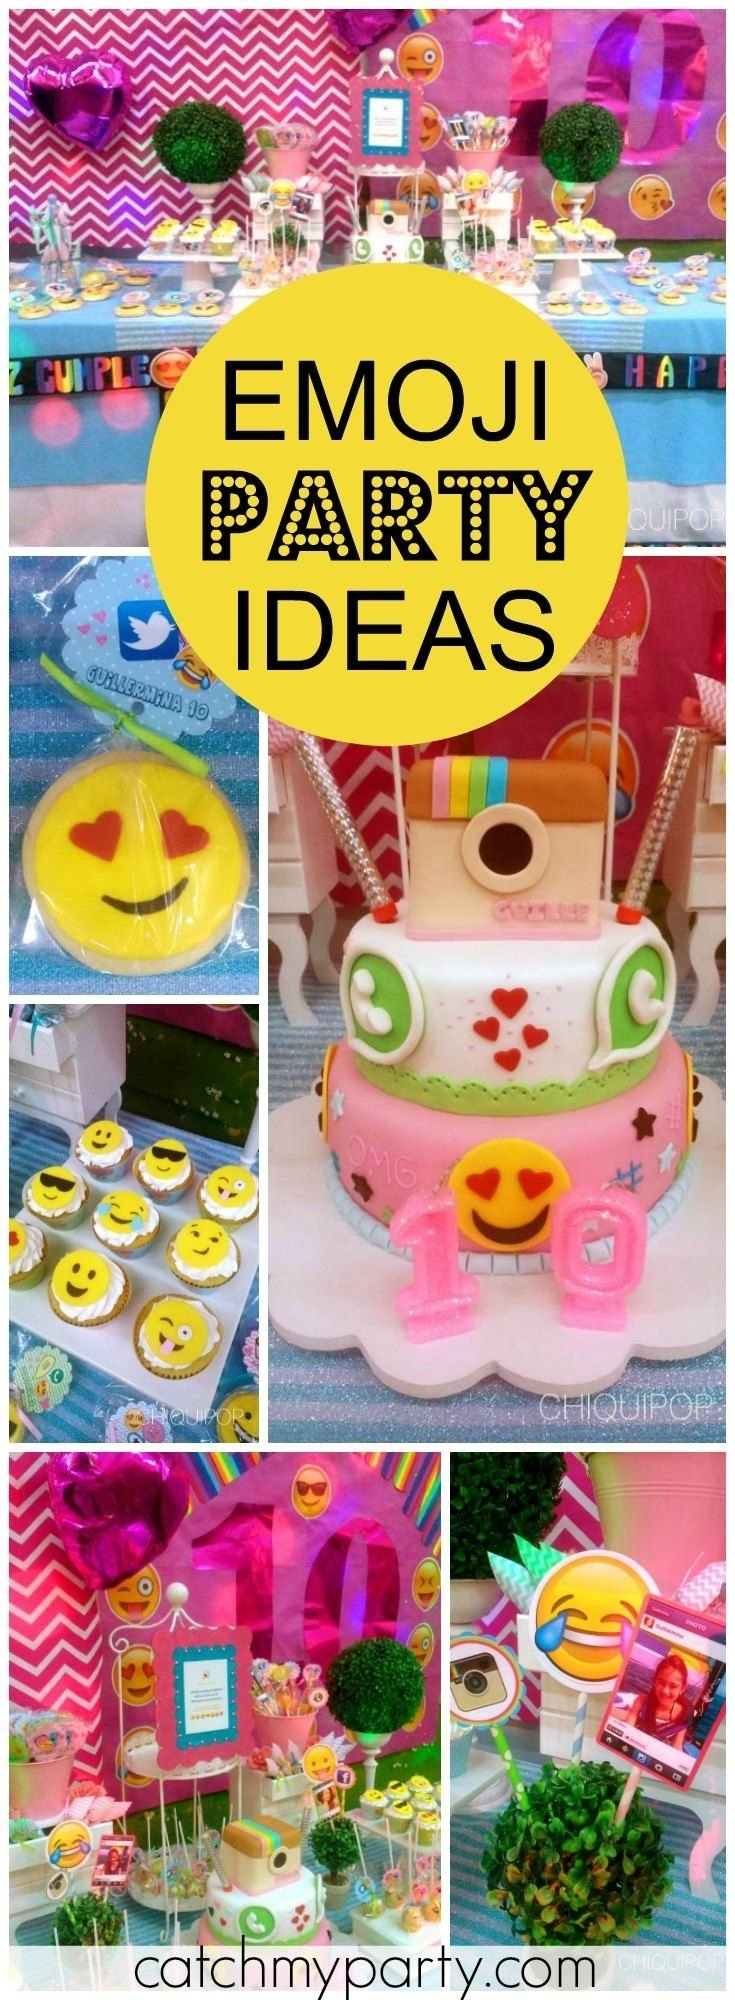 10 Spectacular 13 Year Old Teenage Girl Birthday Party Ideas 12 best thirteenth birthday images on pinterest birthdays party 5 2020